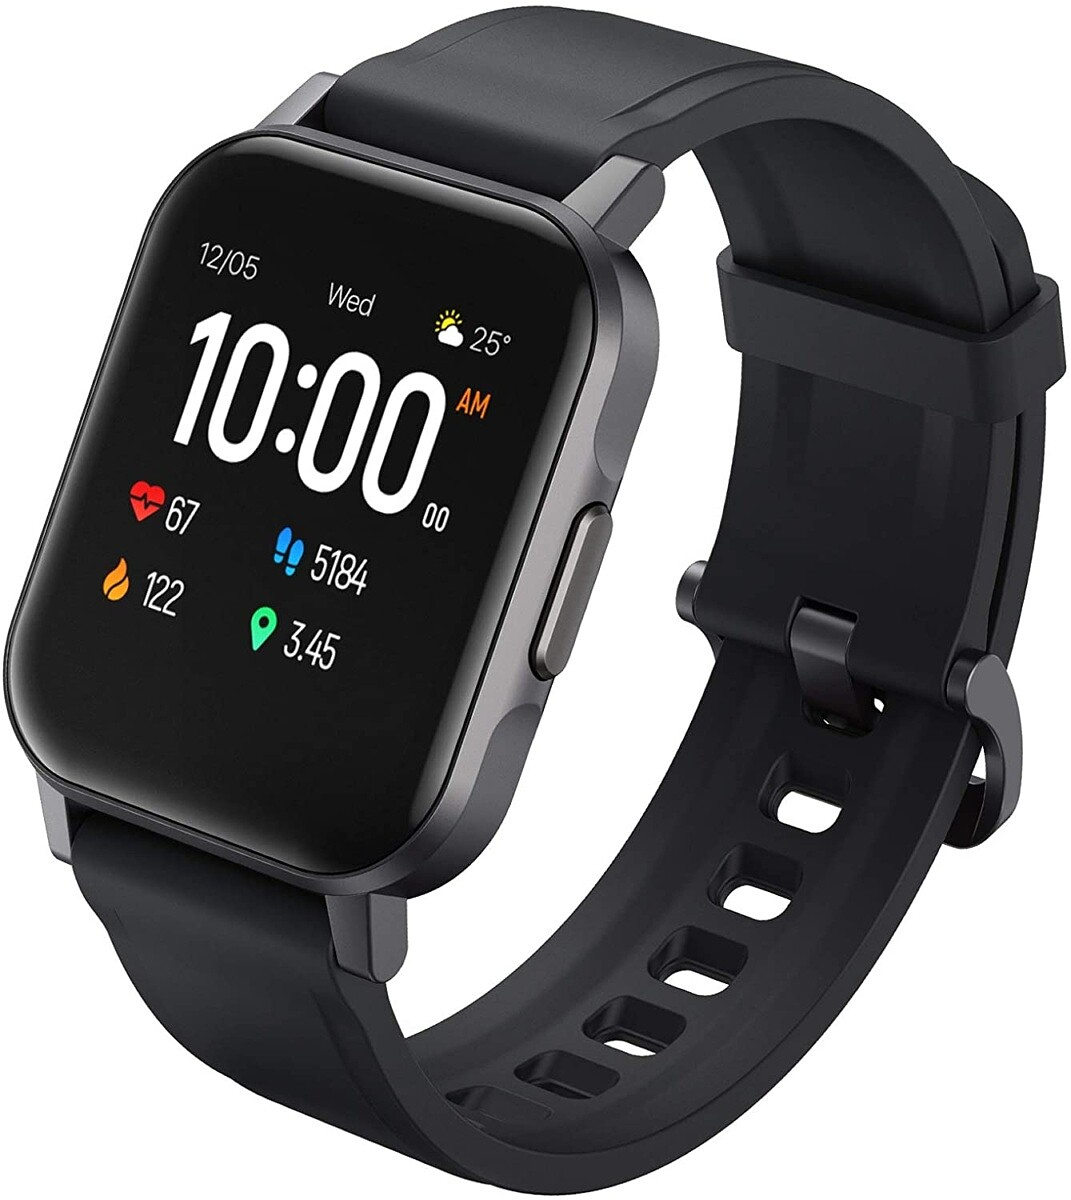 Aukey Smart Watch